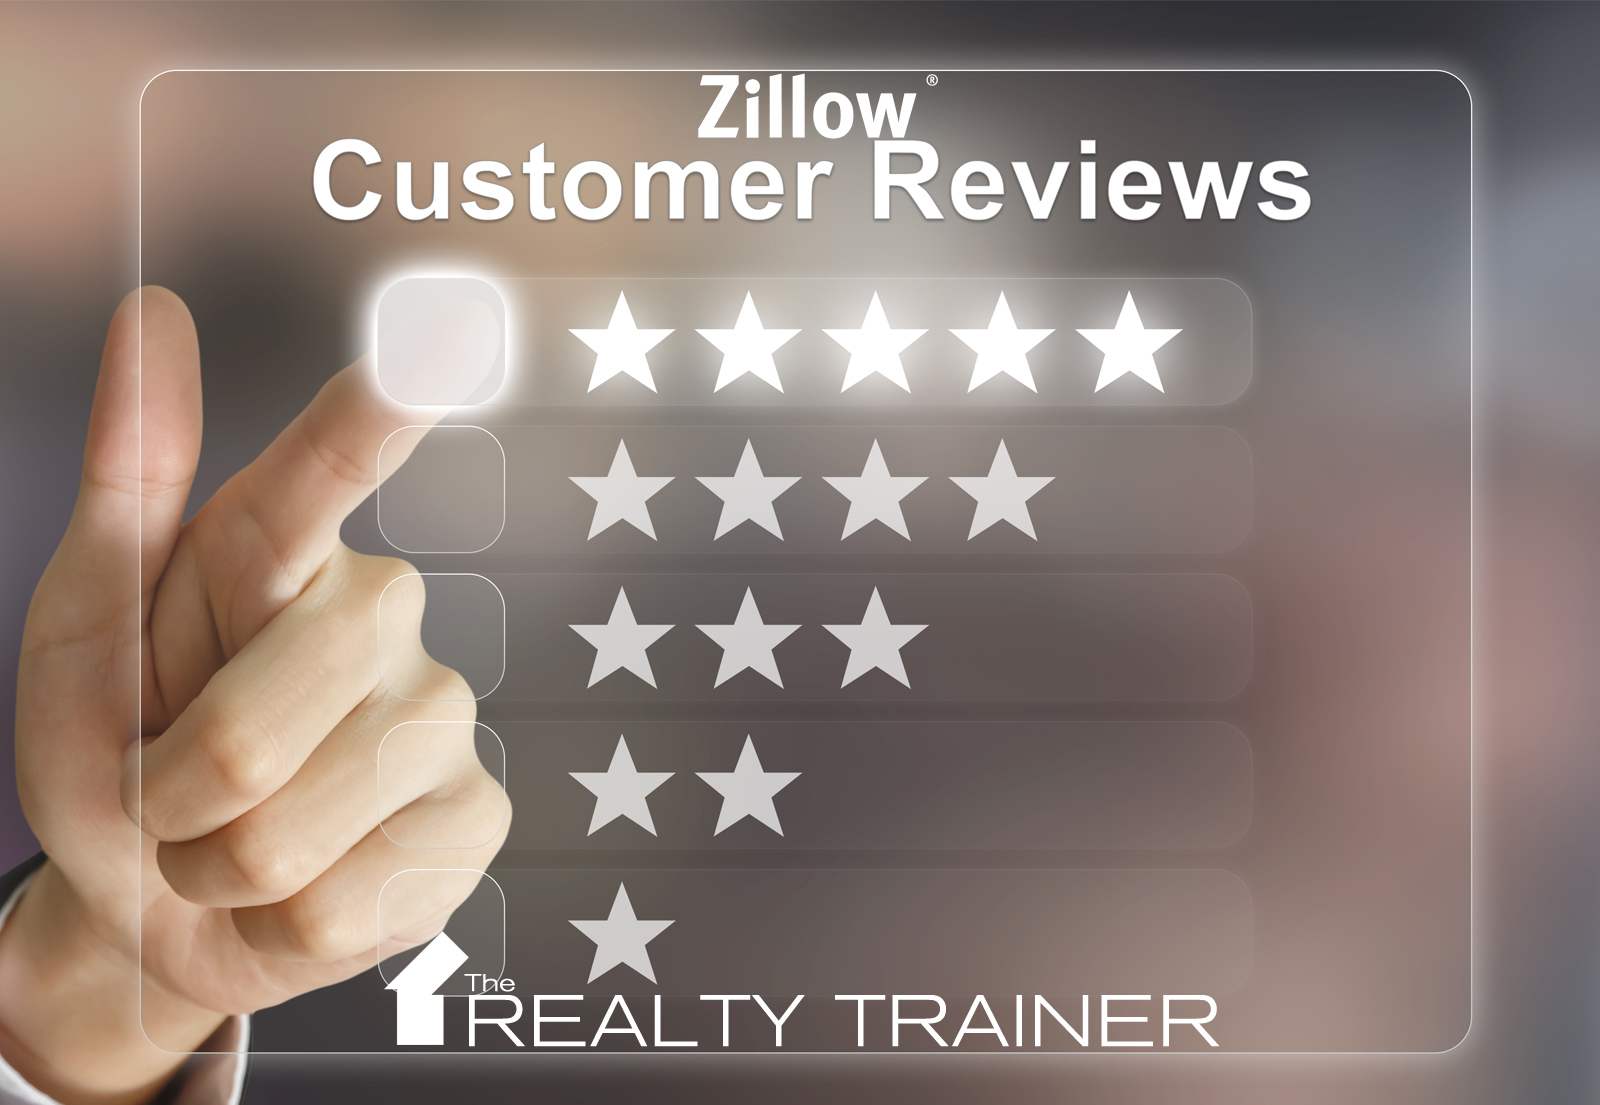 Zillow Real Estate Agent Reviews Guide on How to Get More Leads